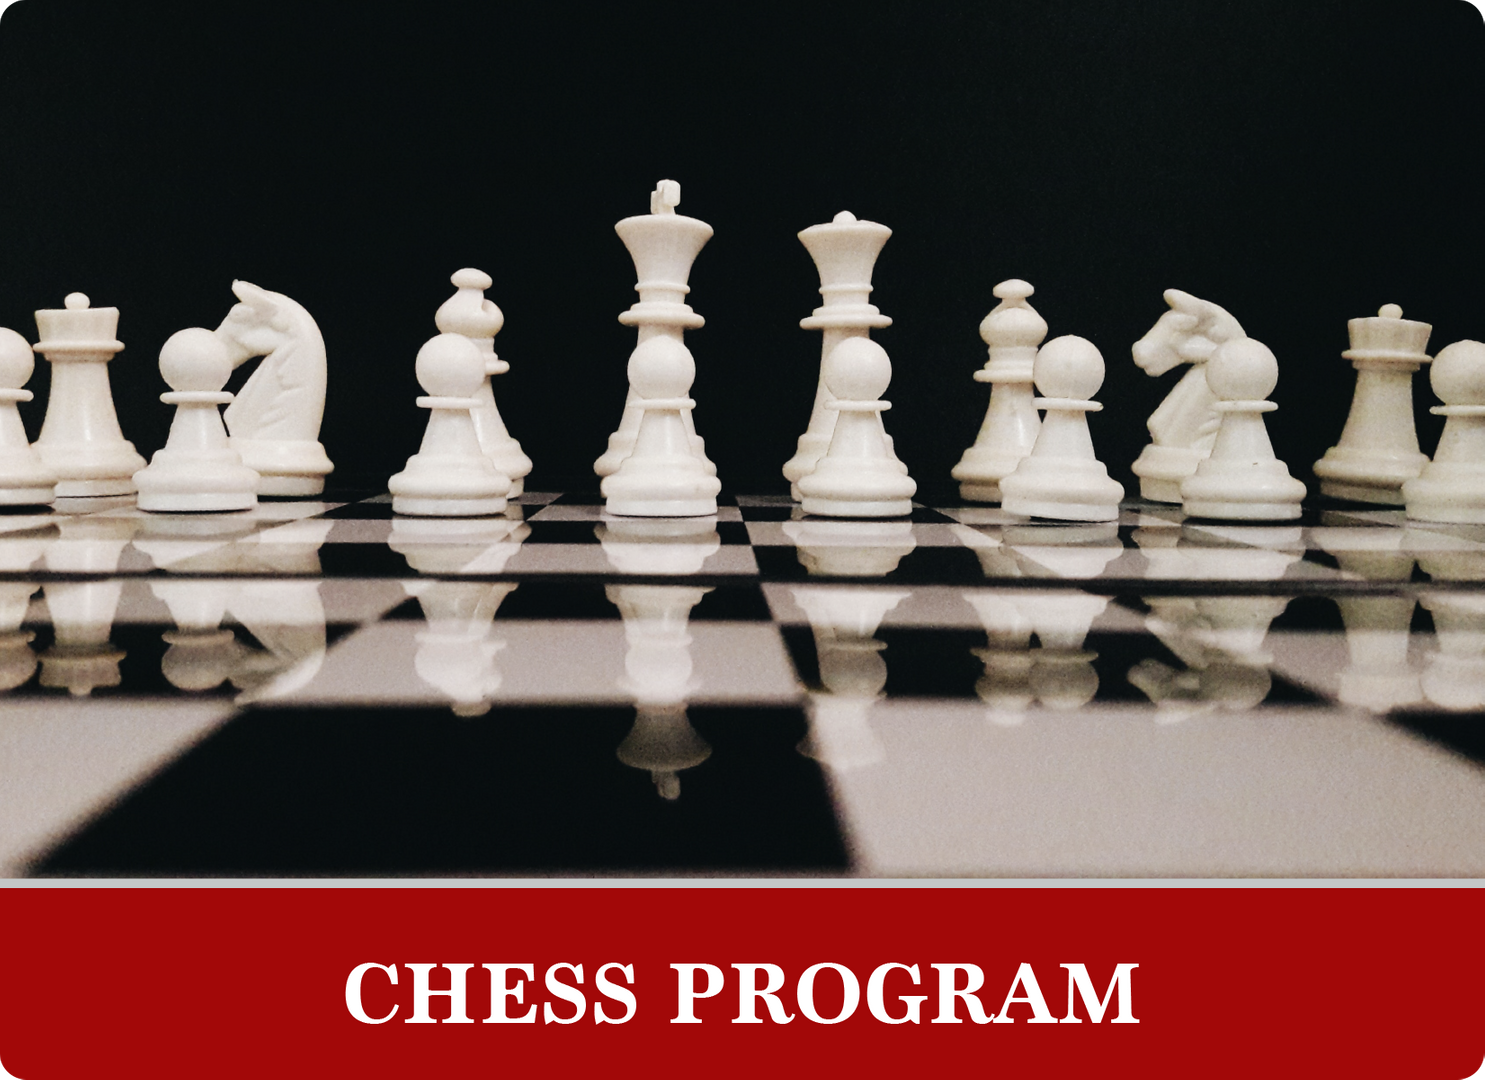 Chess Program: Chess pieces